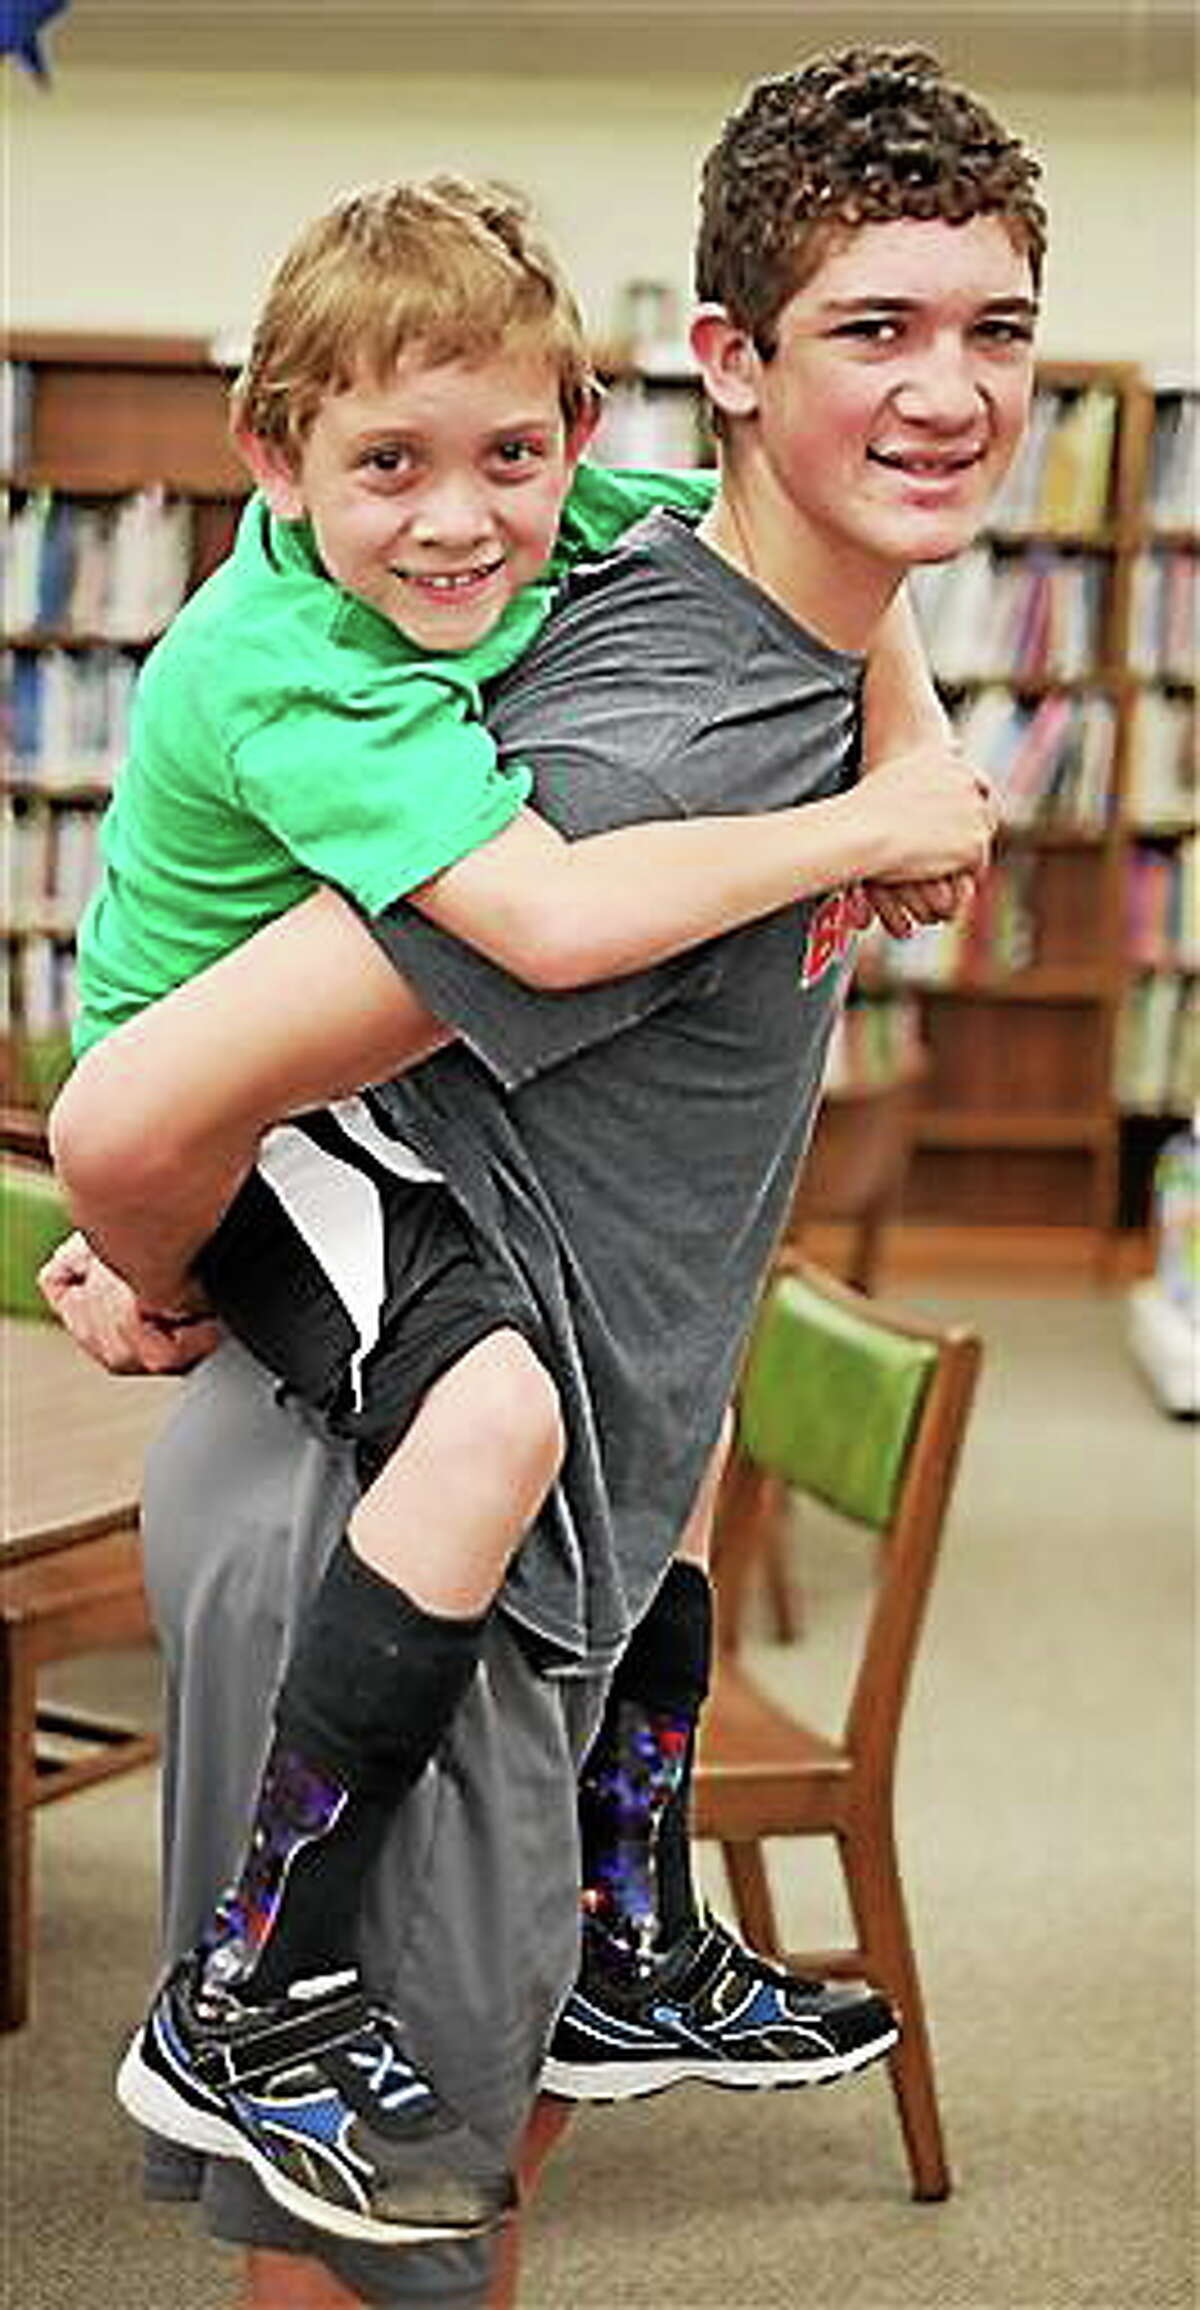 Hunter Gandee, 14, and his brother Braden Gandee, 7, Thursday, May 8, 2014, at Bedford Junior High School in Bedford, Mich. The two will be making a walk to Ann Arbor in June to raise awareness for muscular dystrophy, which afflicts Braden.